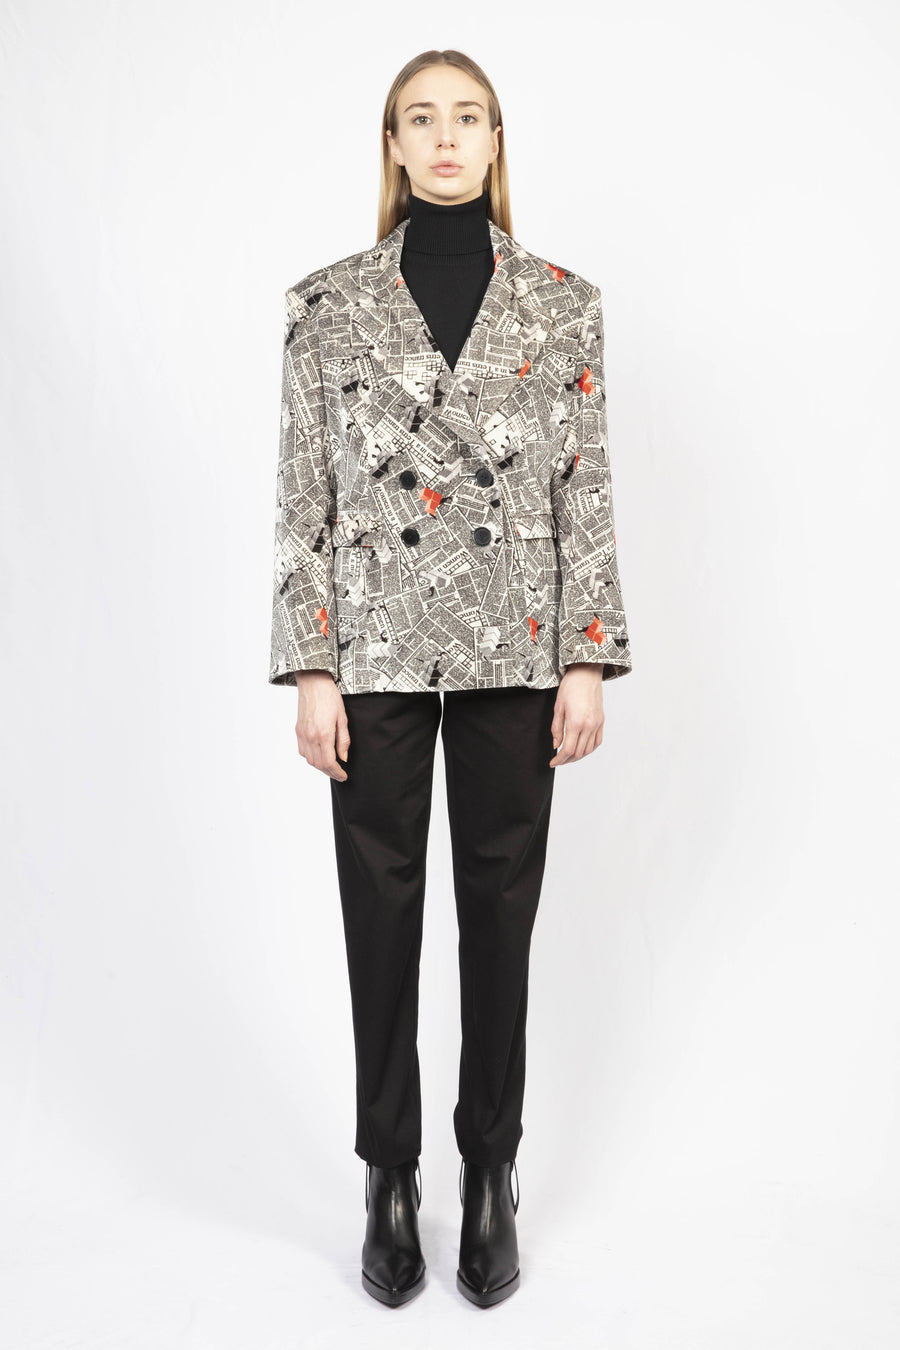 Printed Tailored Blazer and High-Waisted tailored pants